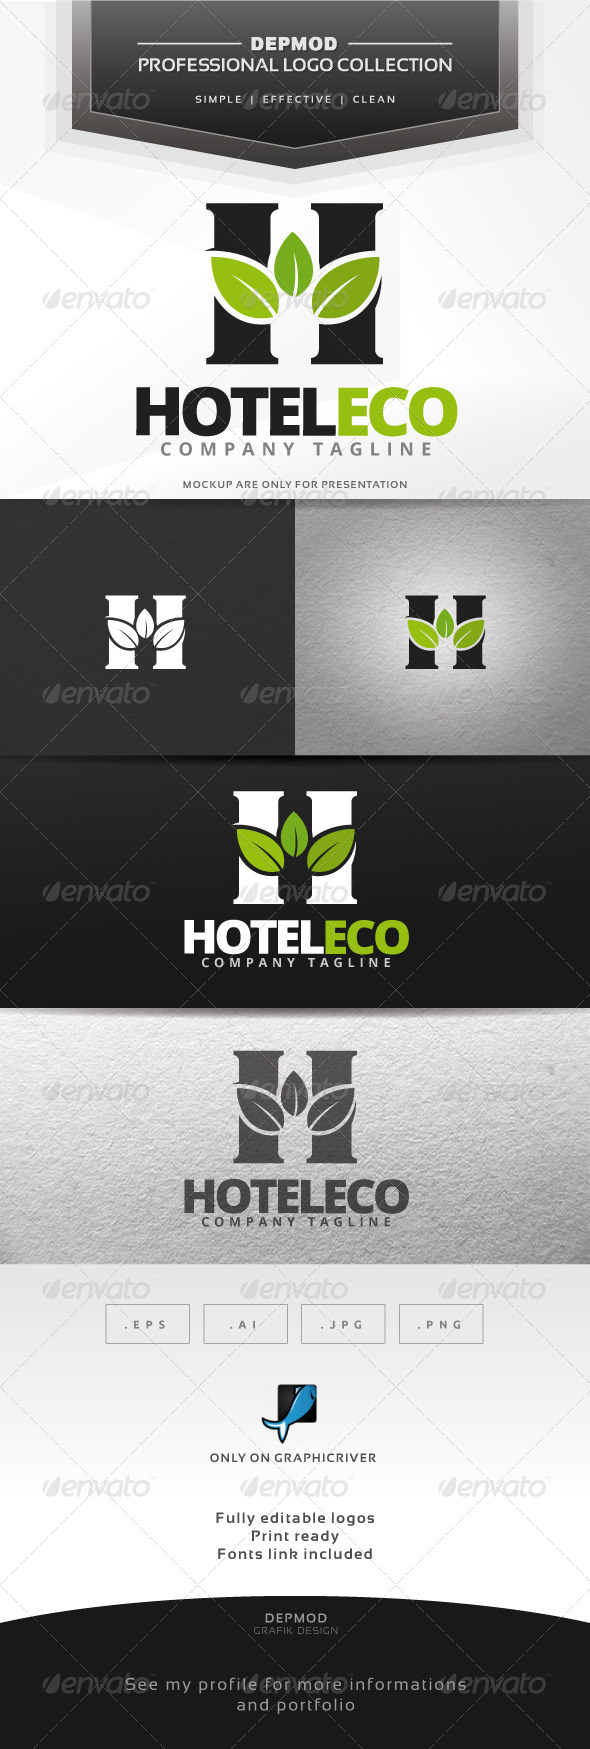 GraphicRiver Hotel Eco Logo 7433483